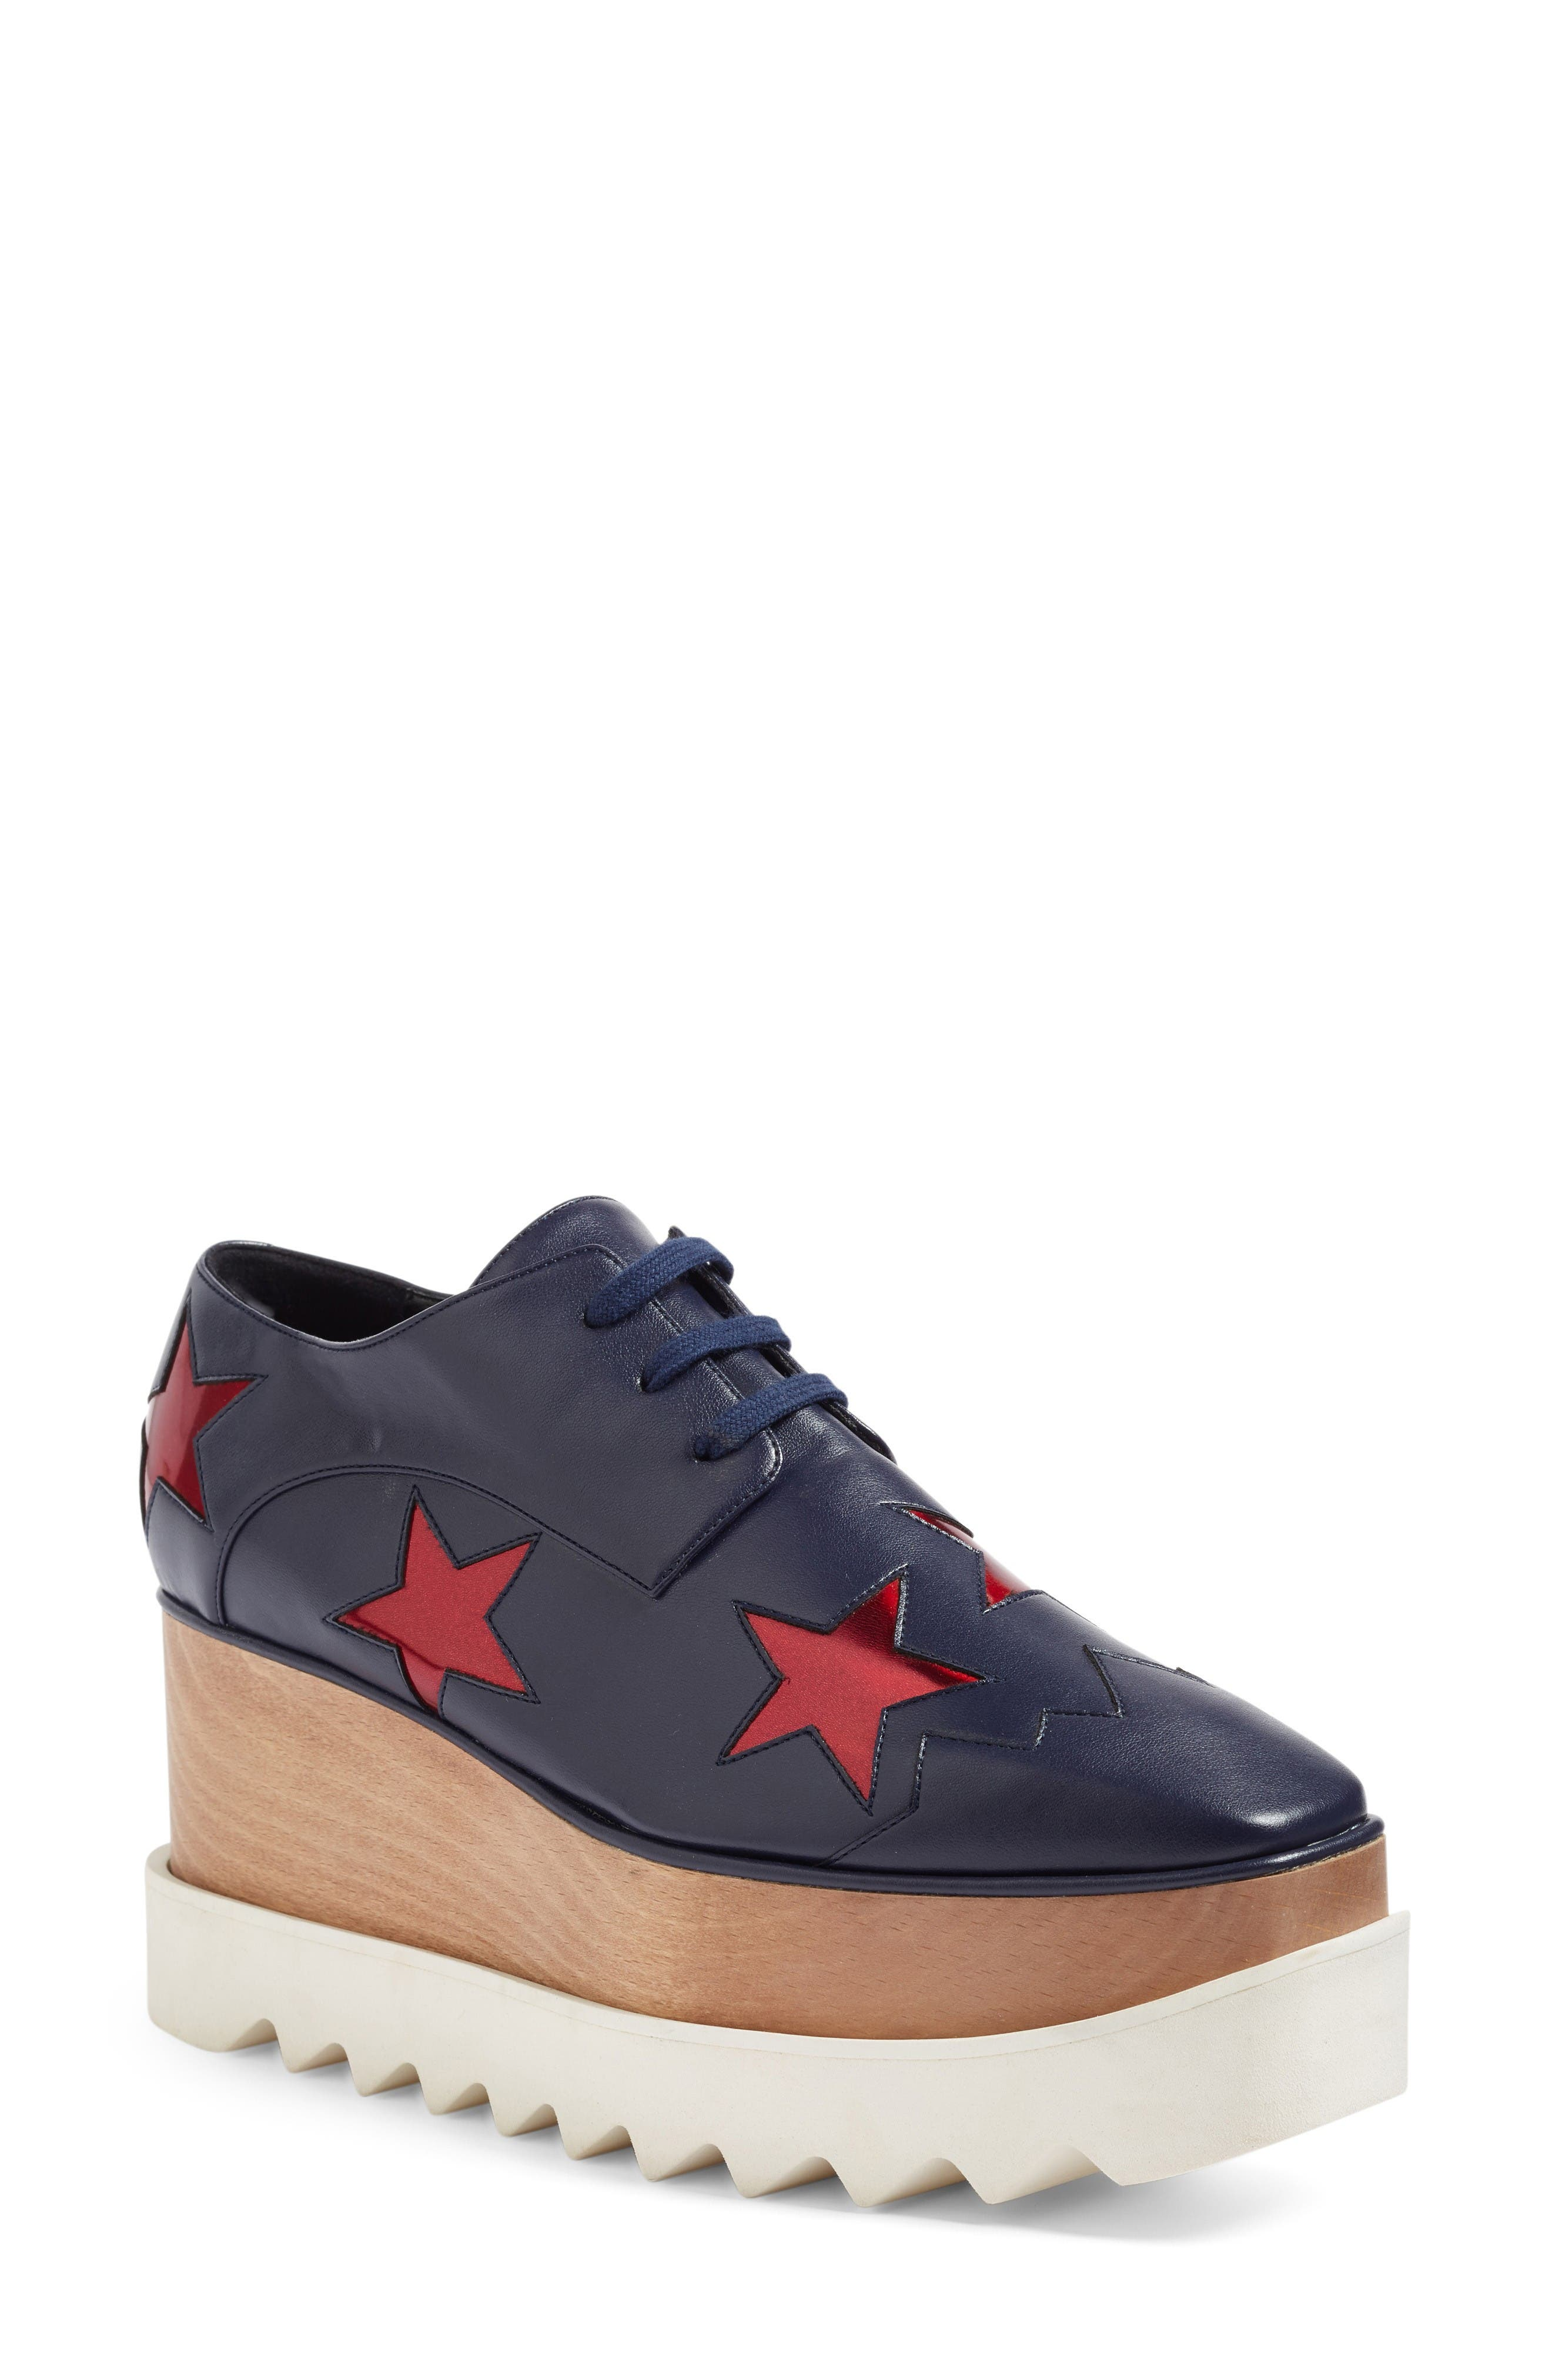 Stella McCartney Platform Oxford (Women)